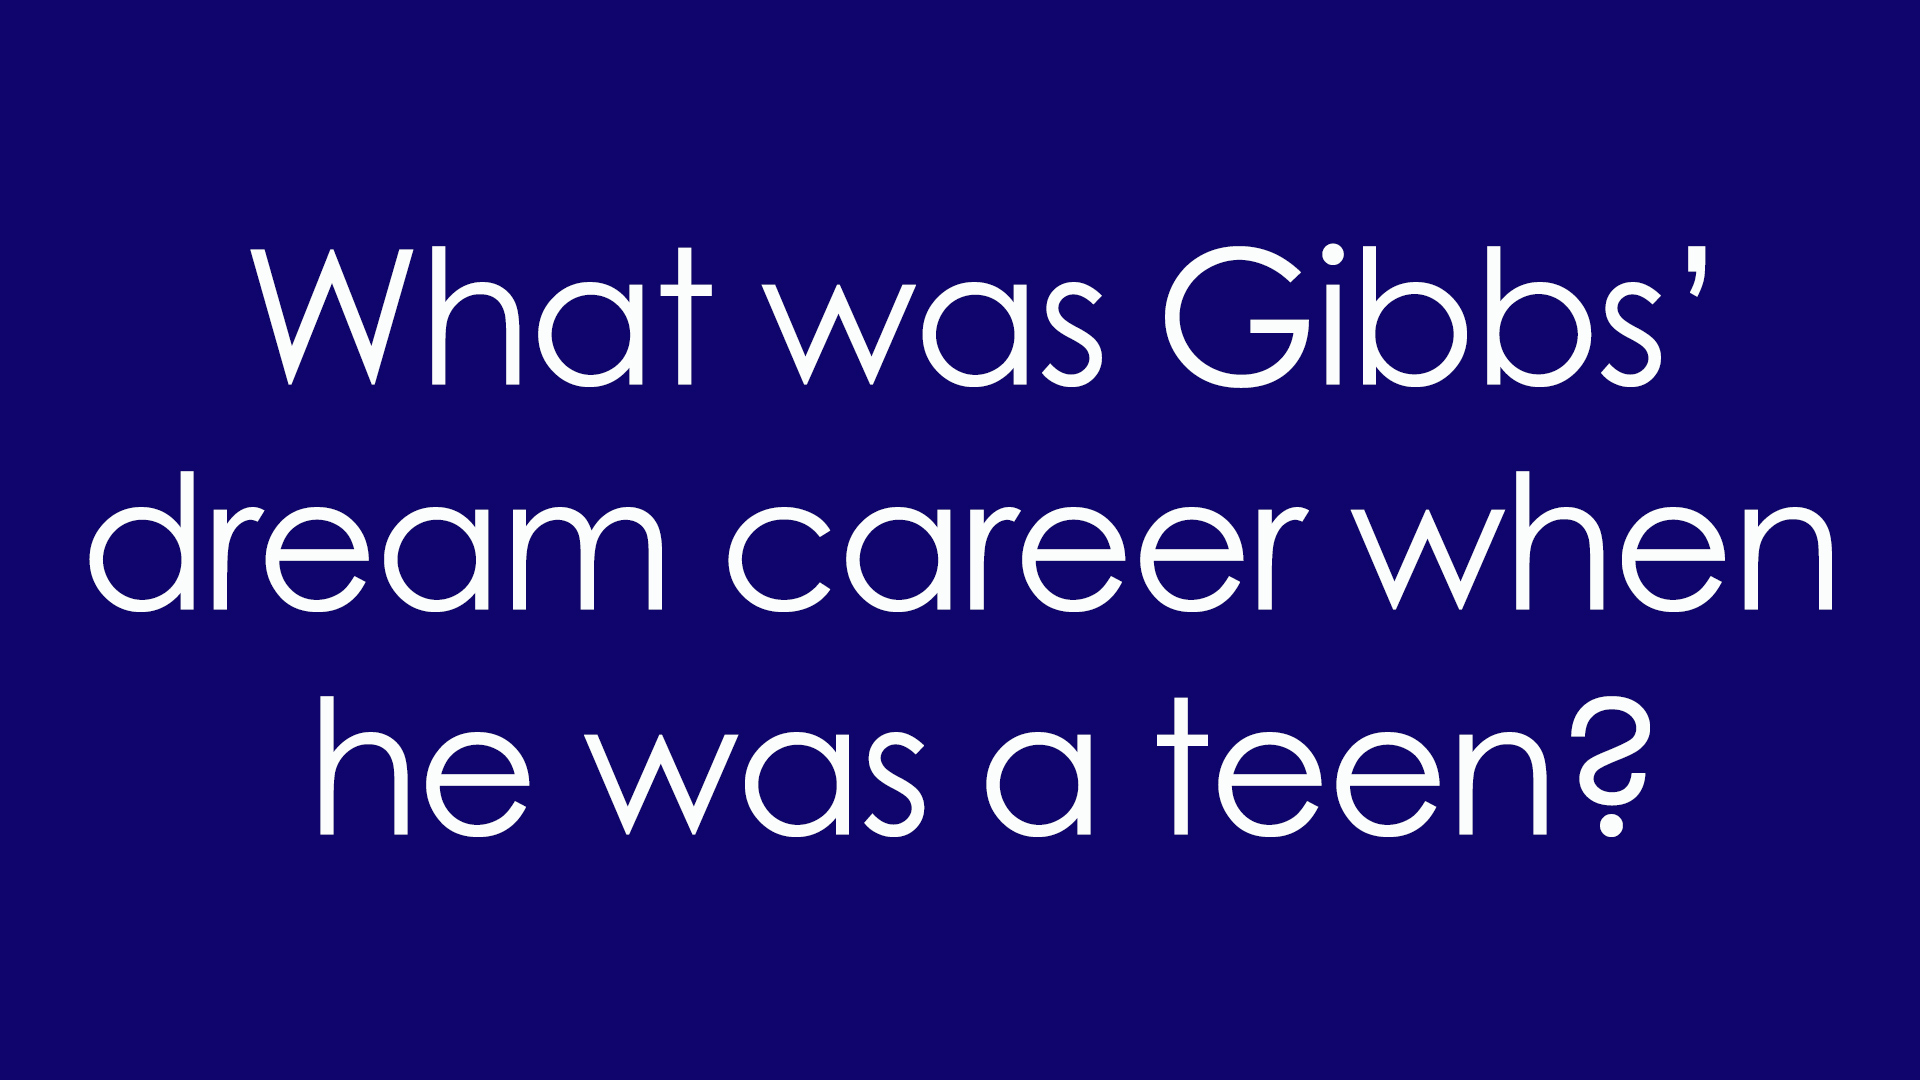 1. What was Gibbs' dream career when he was a teen?